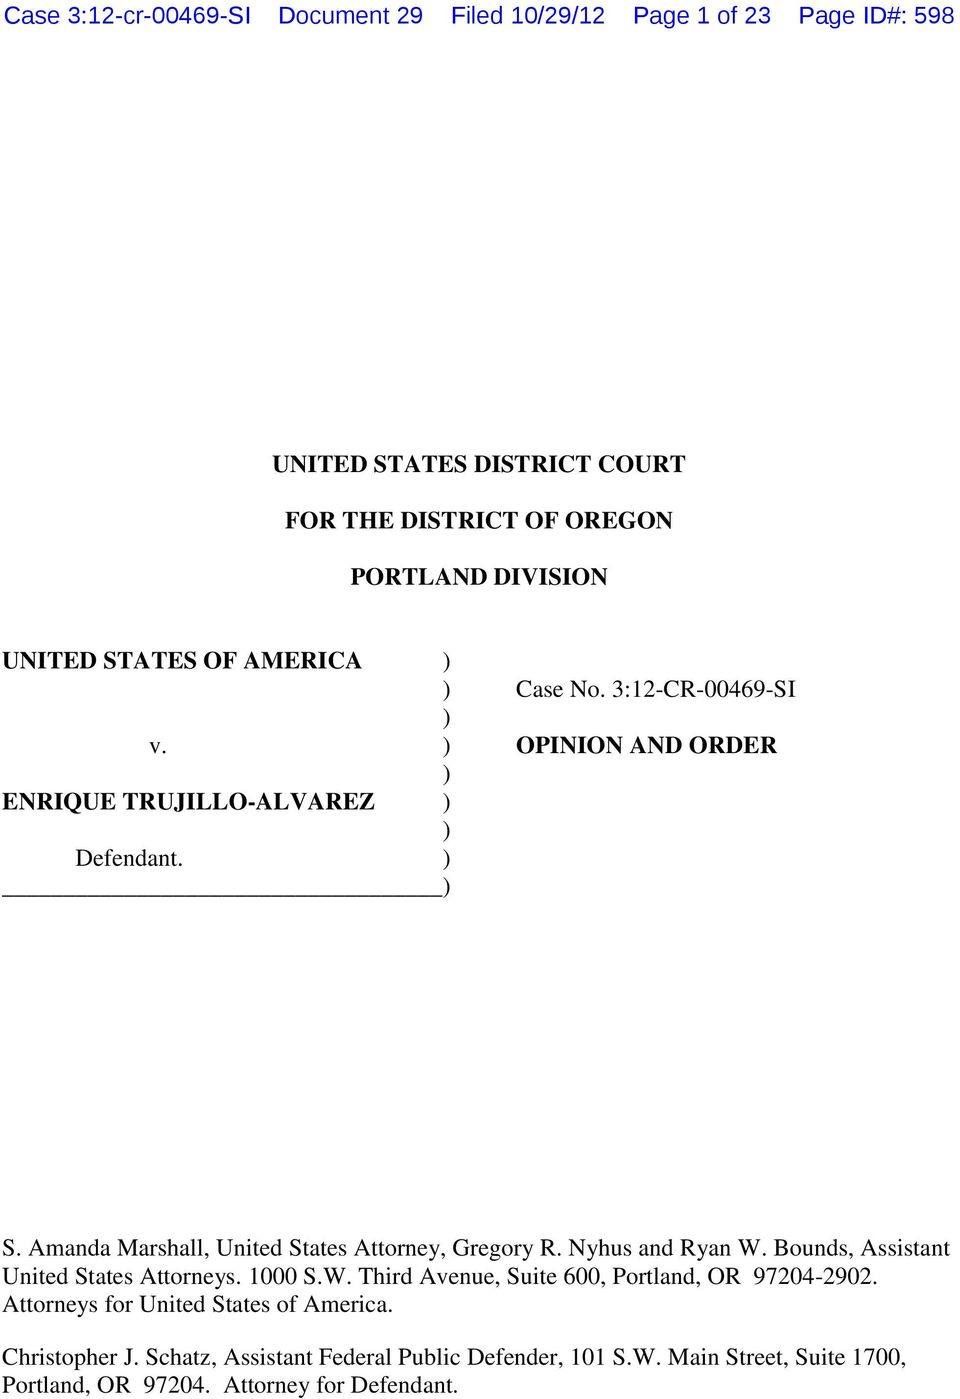 Amanda Marshall, United States Attorney, Gregory R. Nyhus and Ryan W. Bounds, Assistant United States Attorneys. 1000 S.W. Third Avenue, Suite 600, Portland, OR 97204-2902.